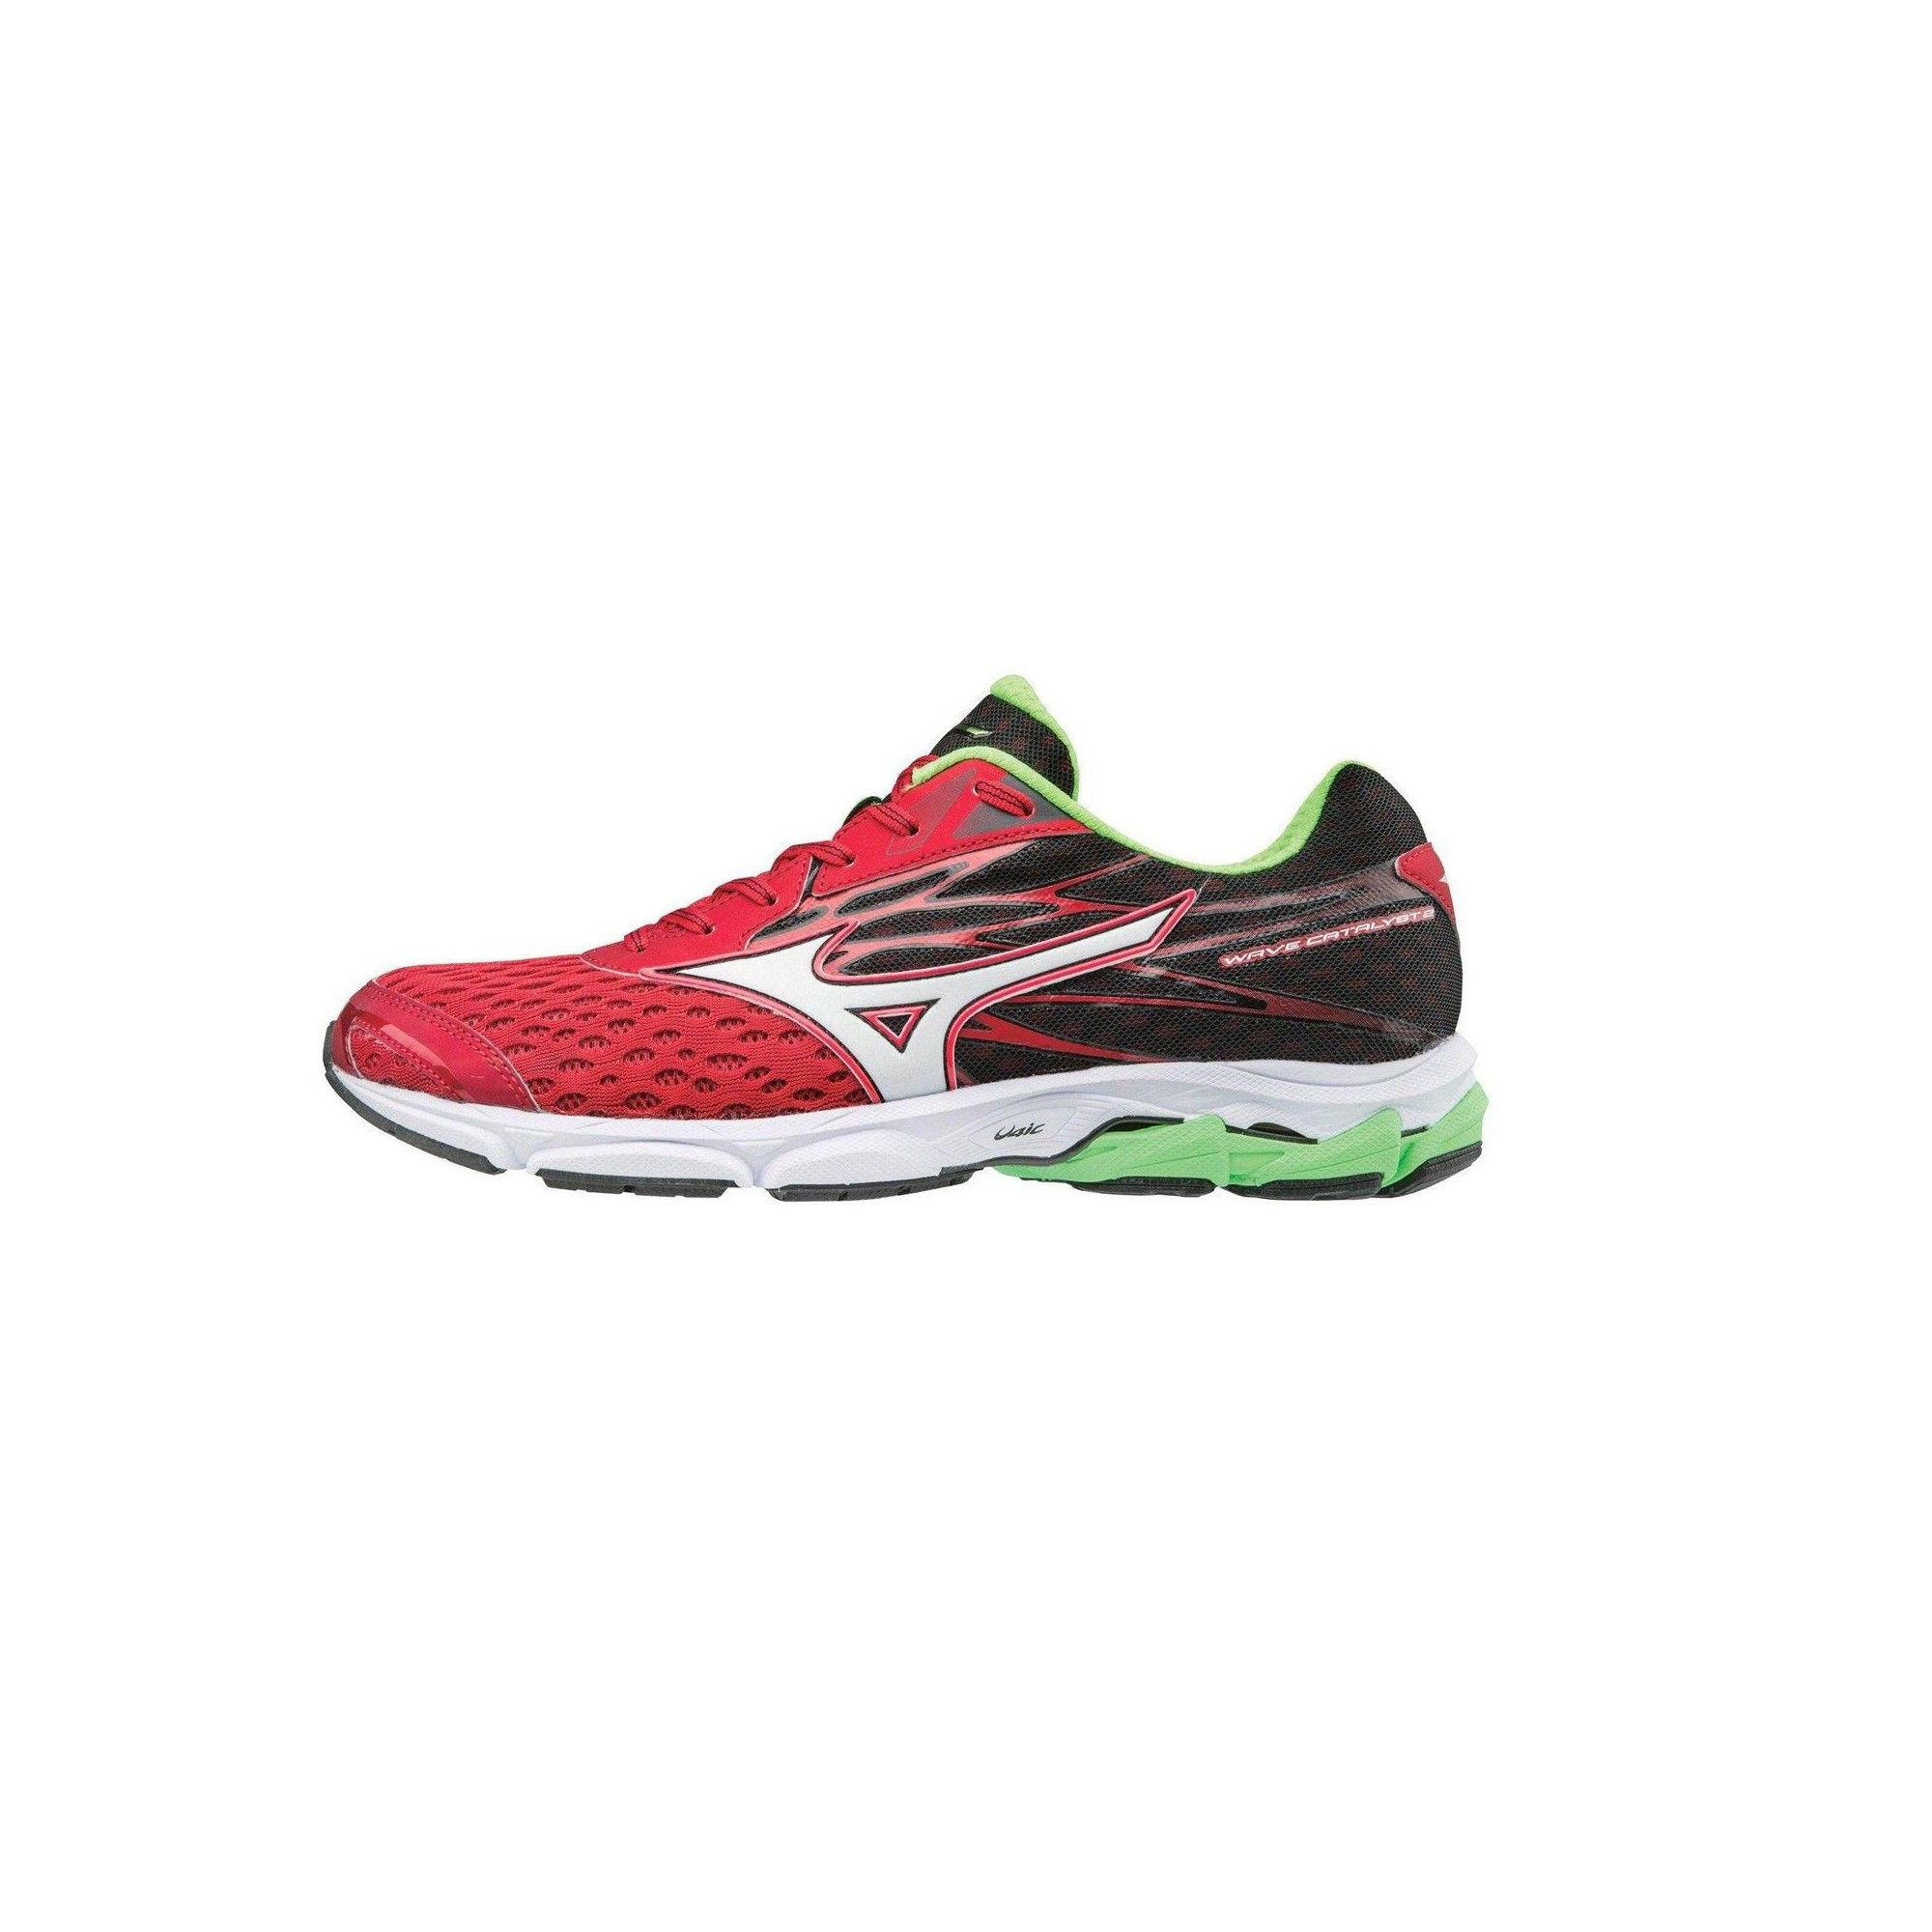 mizuno mens running shoes size 9 years old for